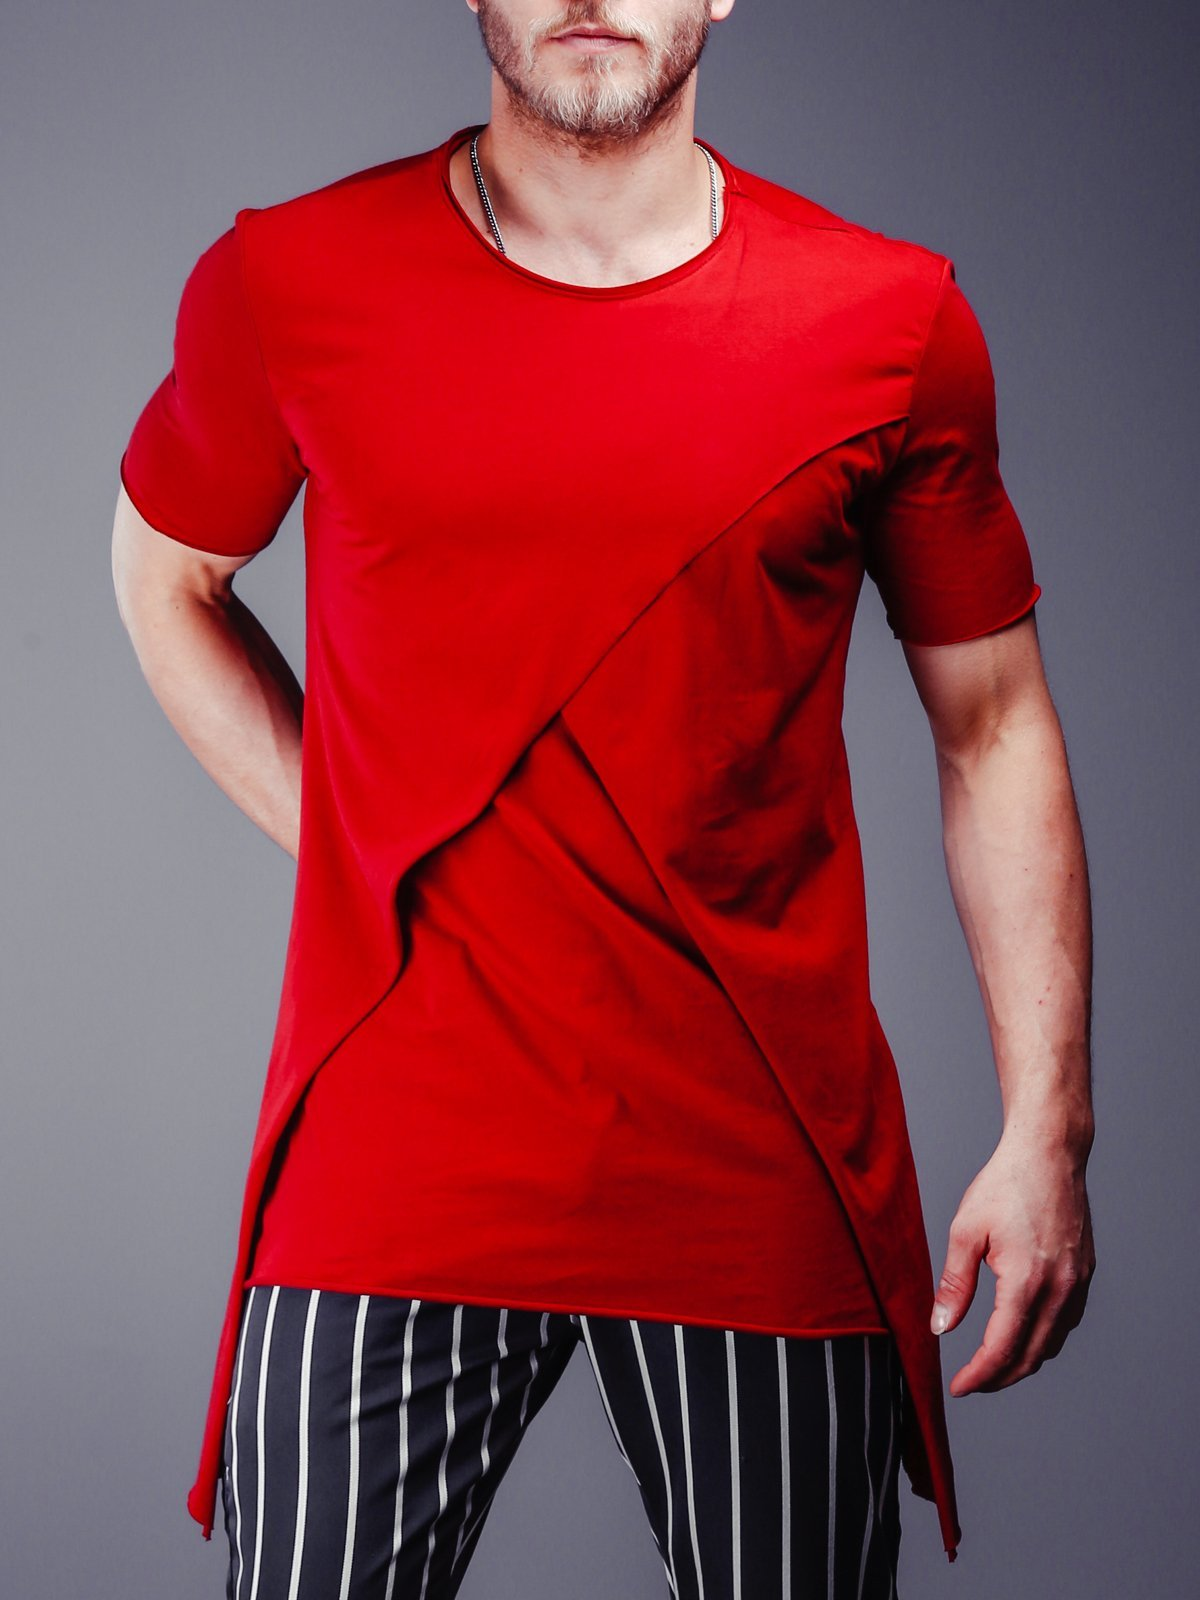 c5eeebeae39b Raw Cut T-Shirt Patched Blocks - Red in 2019